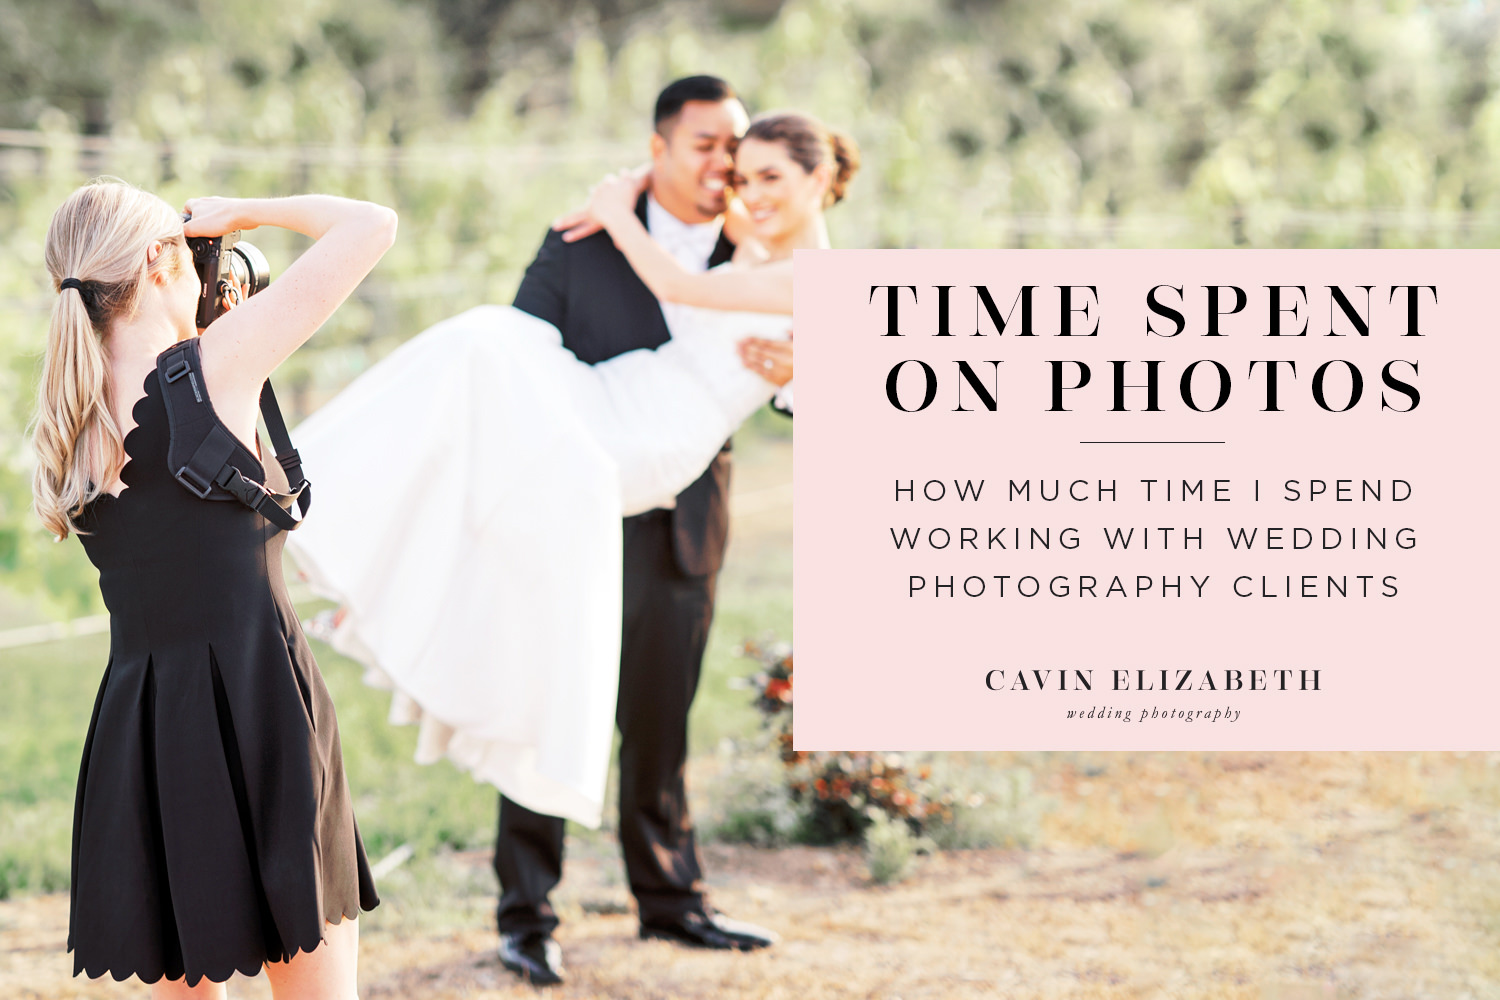 The Actual Time Wedding Photographers Spend on Each Couple